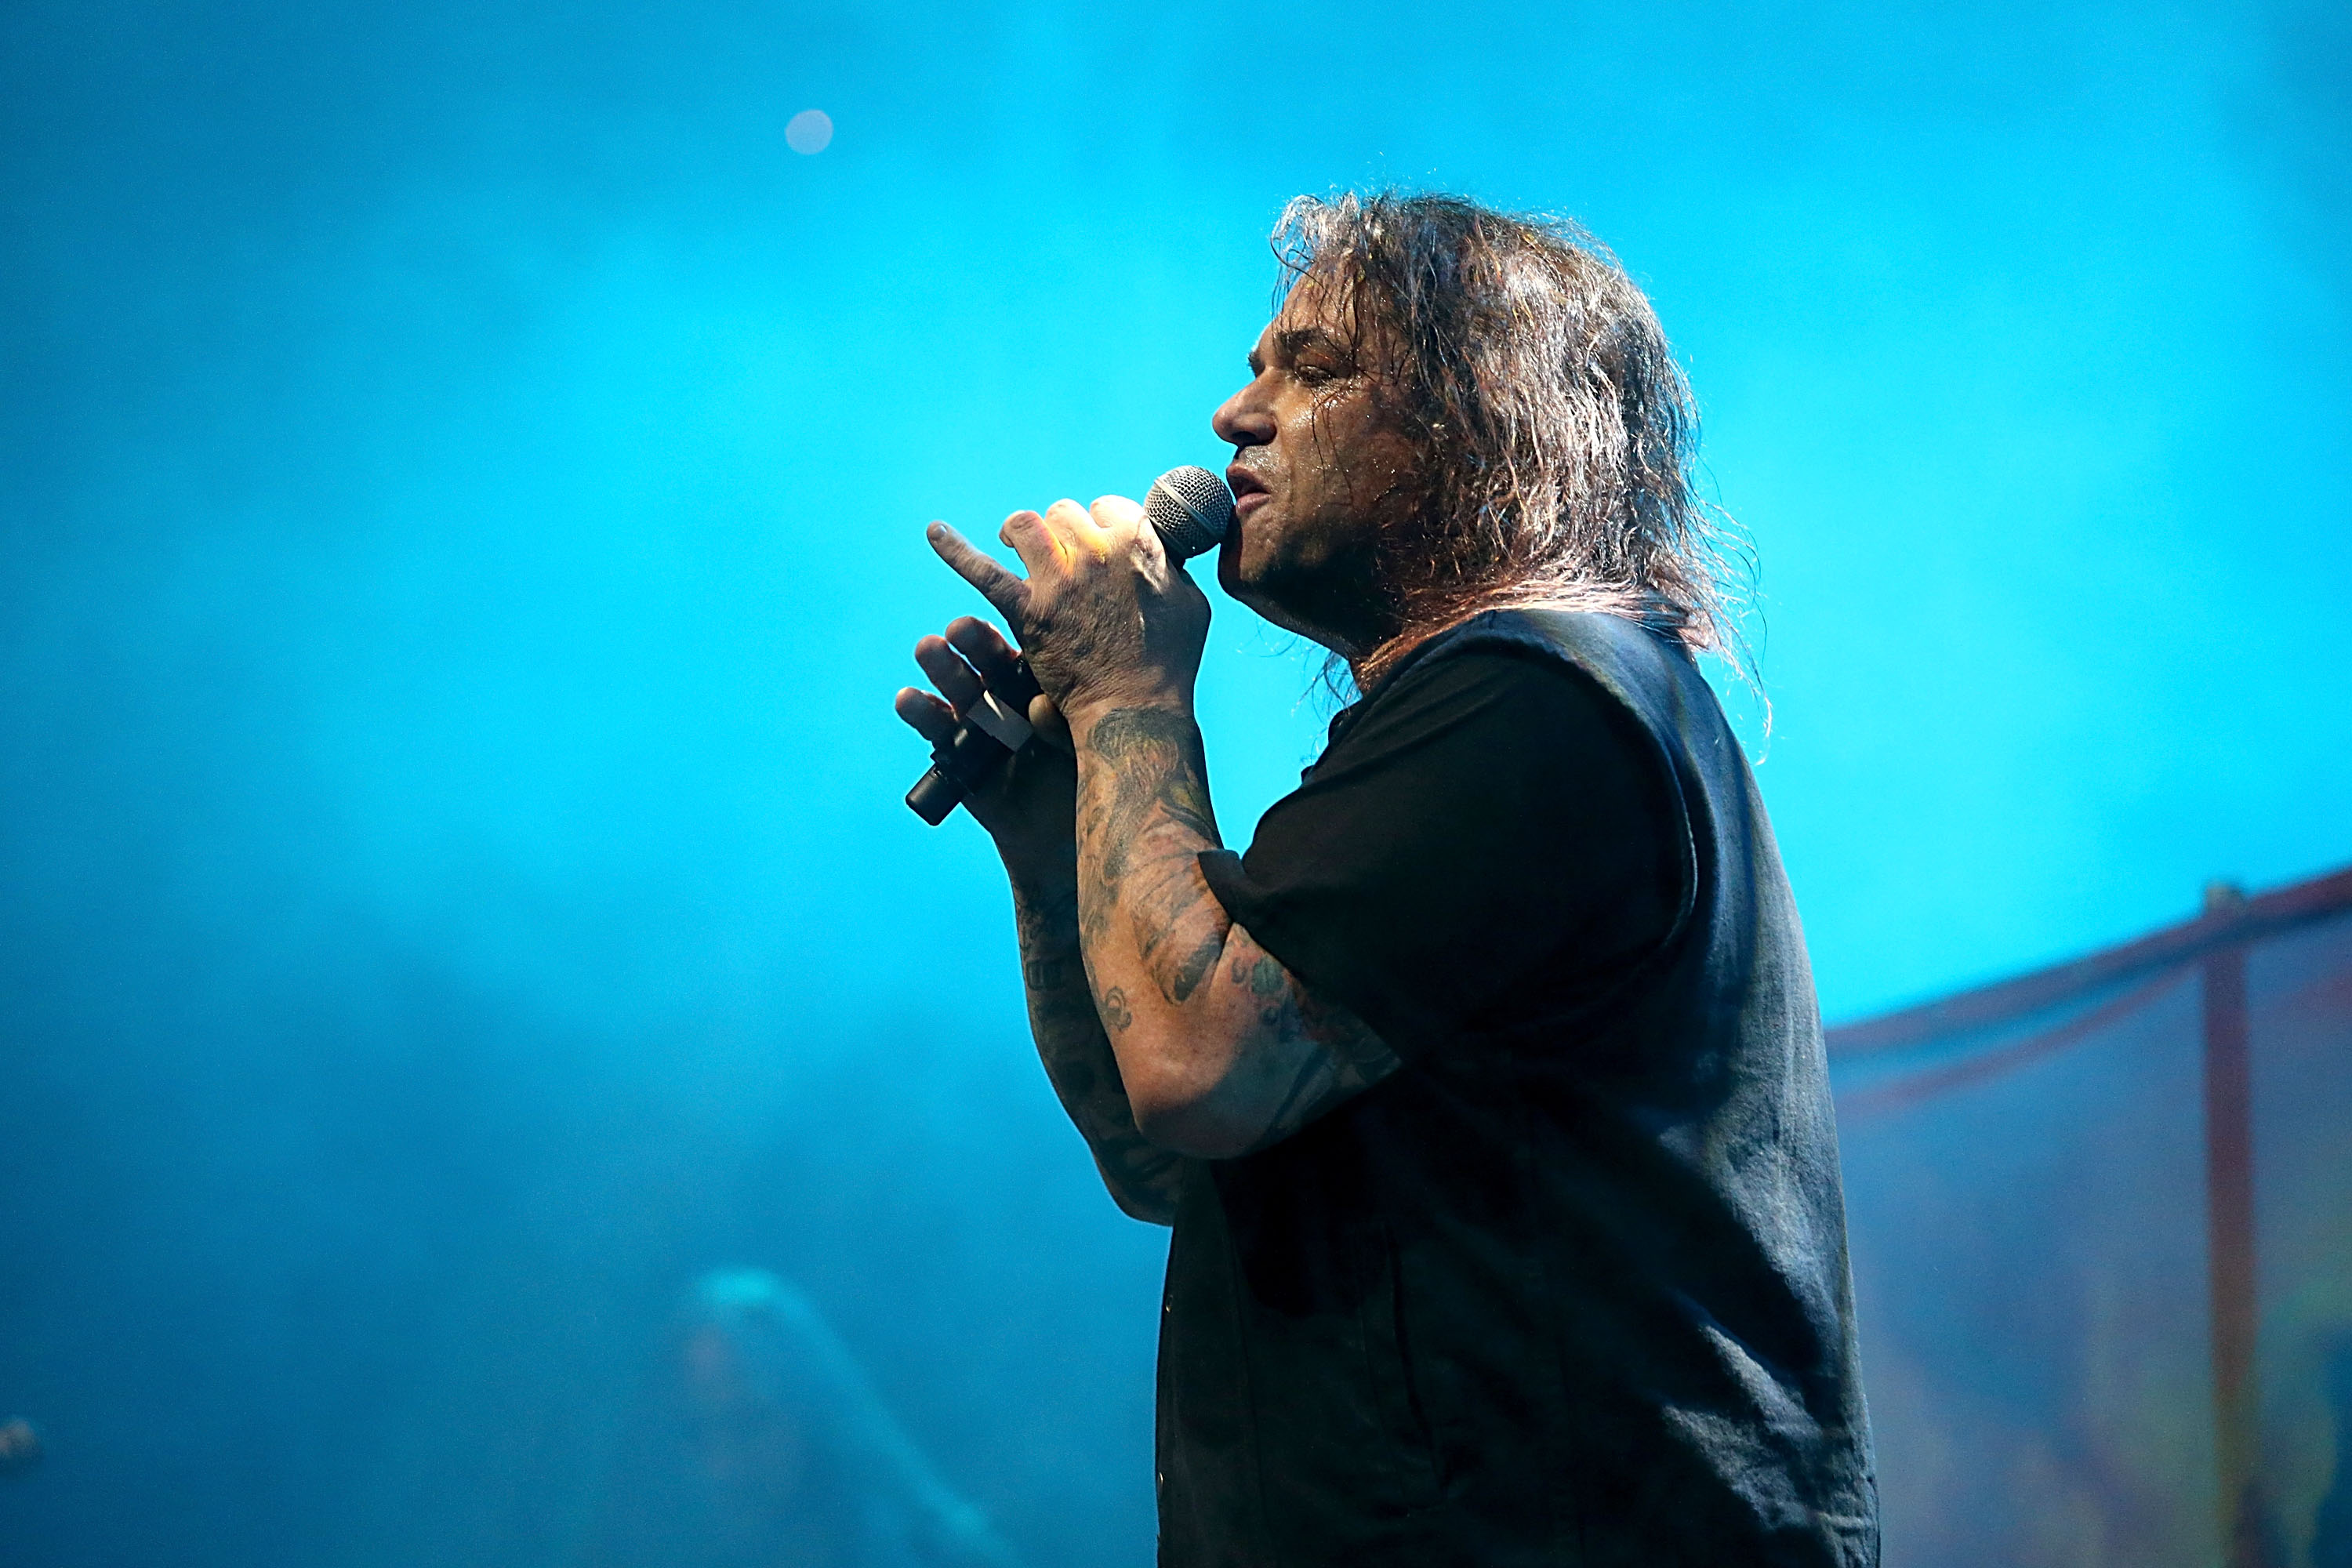 AUSTIN, TX - NOVEMBER 18:  Steve Souza performs in concert with Exodus at ACL Live on November 18, 2014 in Austin, Texas.  (P